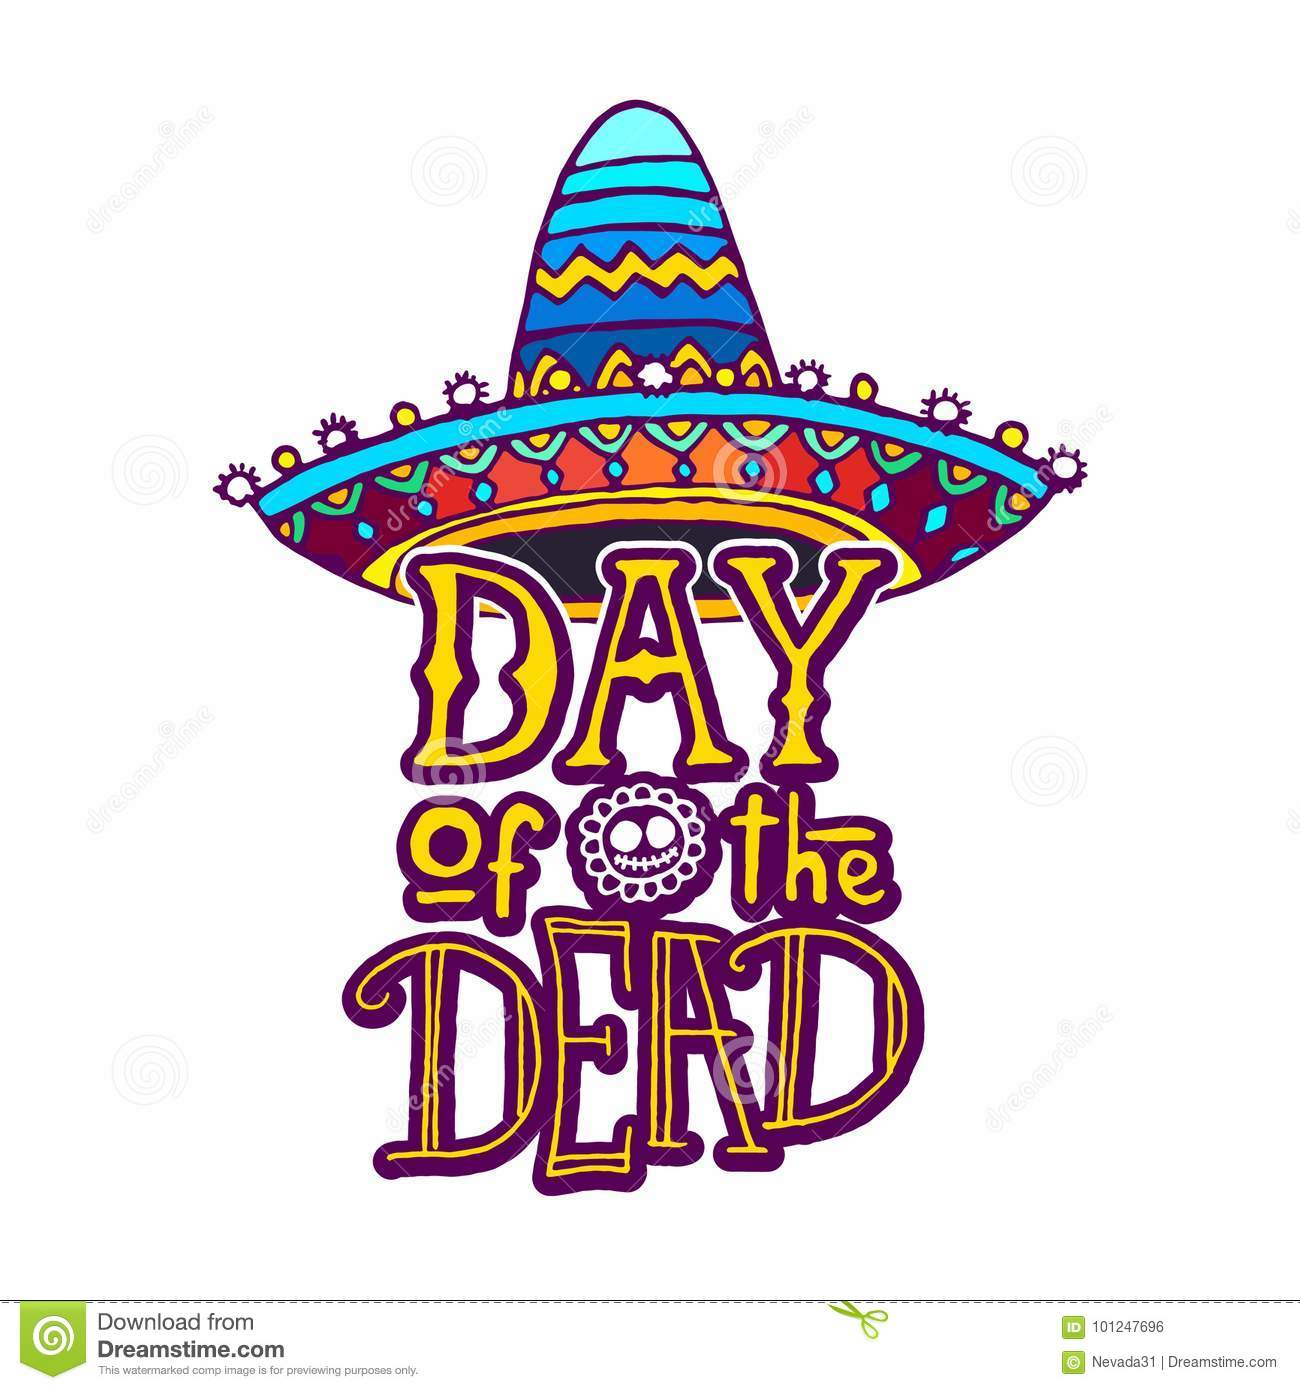 Day Of The Dead Template | Day Of The Dead Design Template Stock Illustration Illustration Of